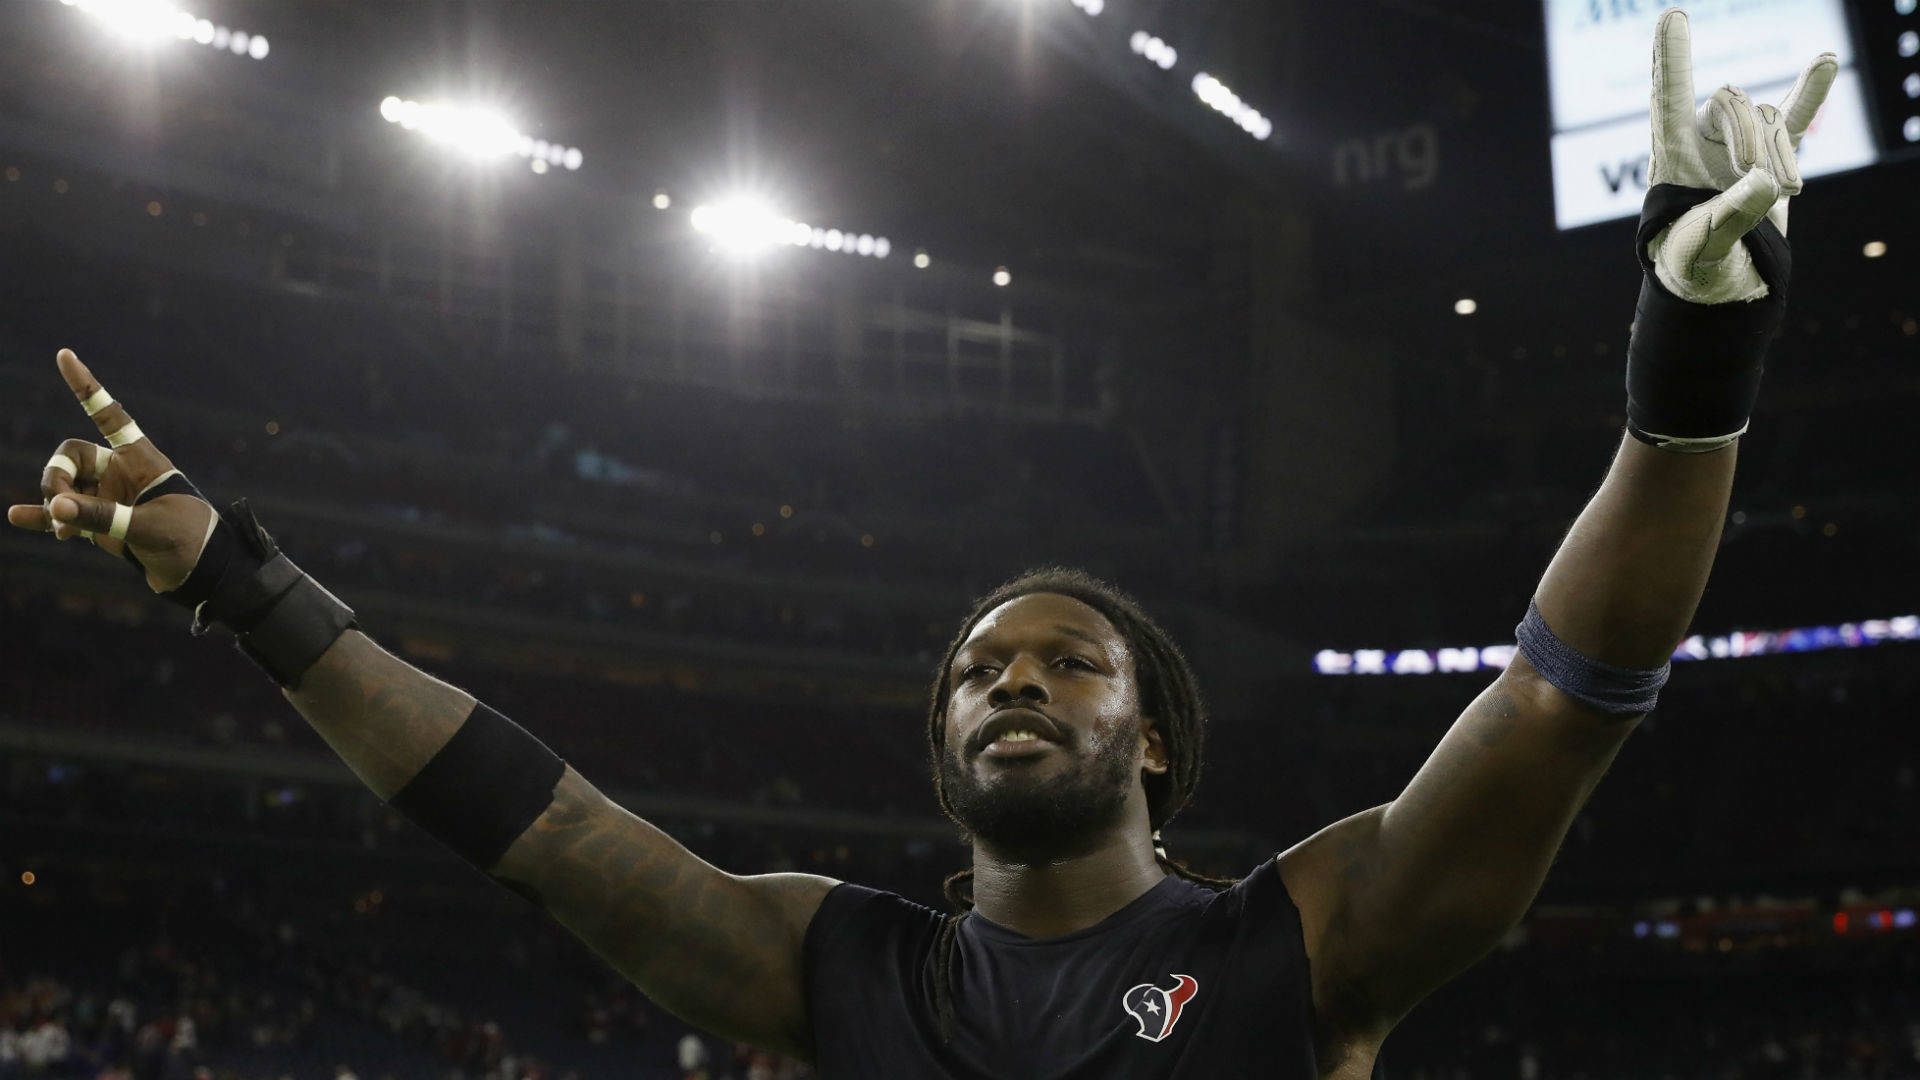 1920x1080 Jadeveon Clowney towers over Randy Moss in viral photo